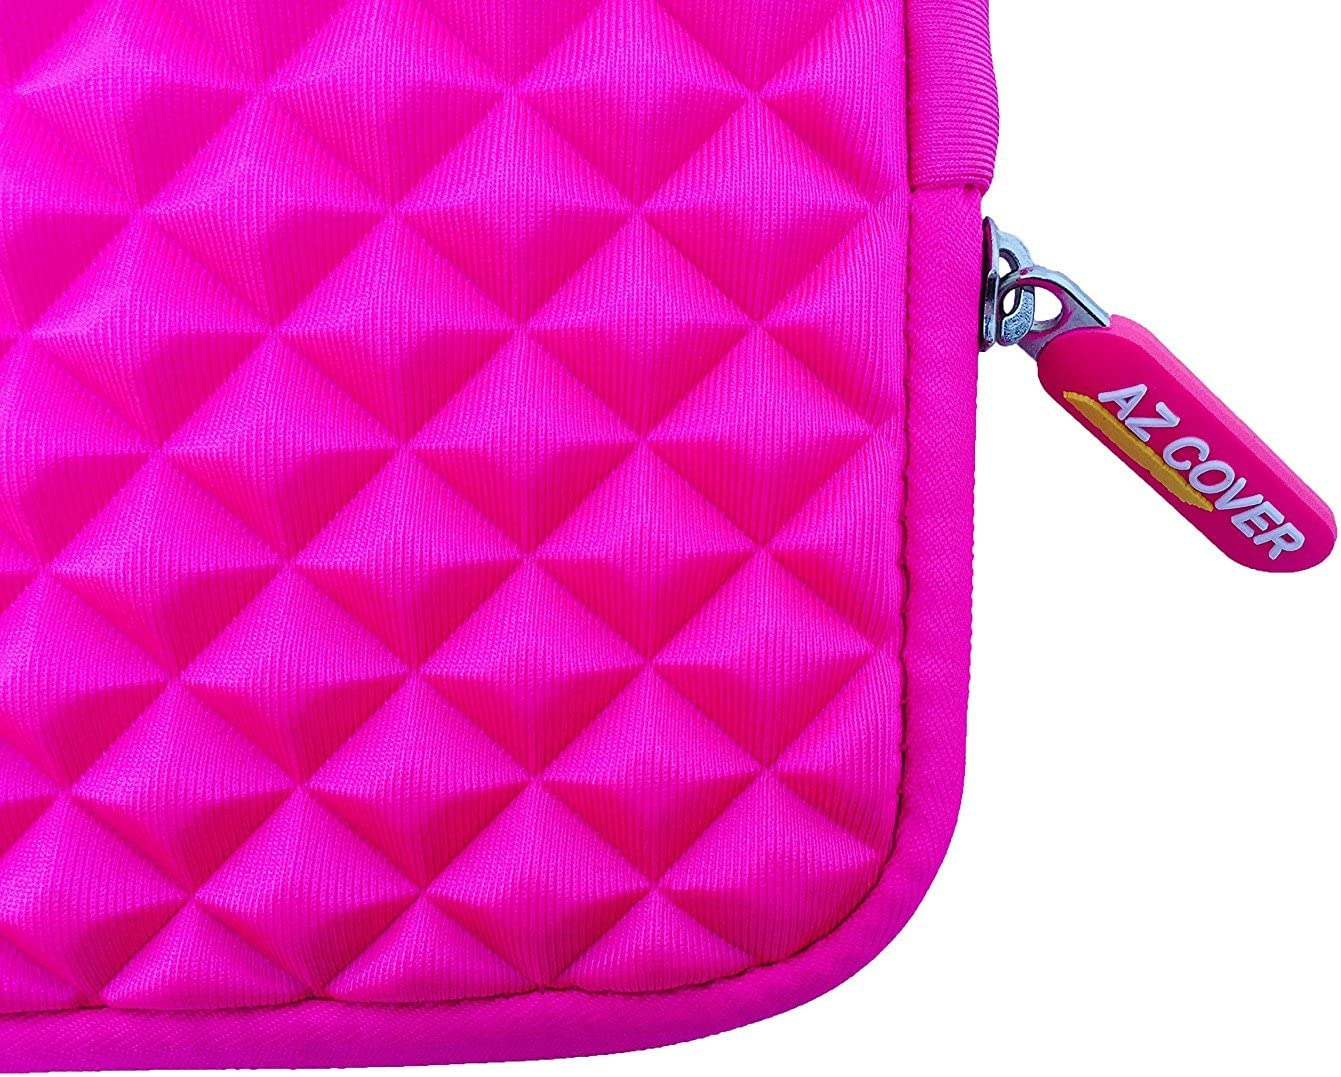 AZ-Cover 11.6-Inch Simplicity Stylish Diamond Foam Shock-Resistant Neoprene Sleeve Hot Pink for Lenovo Thinkpad Yoga 2-in-1 Convertible 11.6-inch IPS Touchscreen Laptop Tablet,